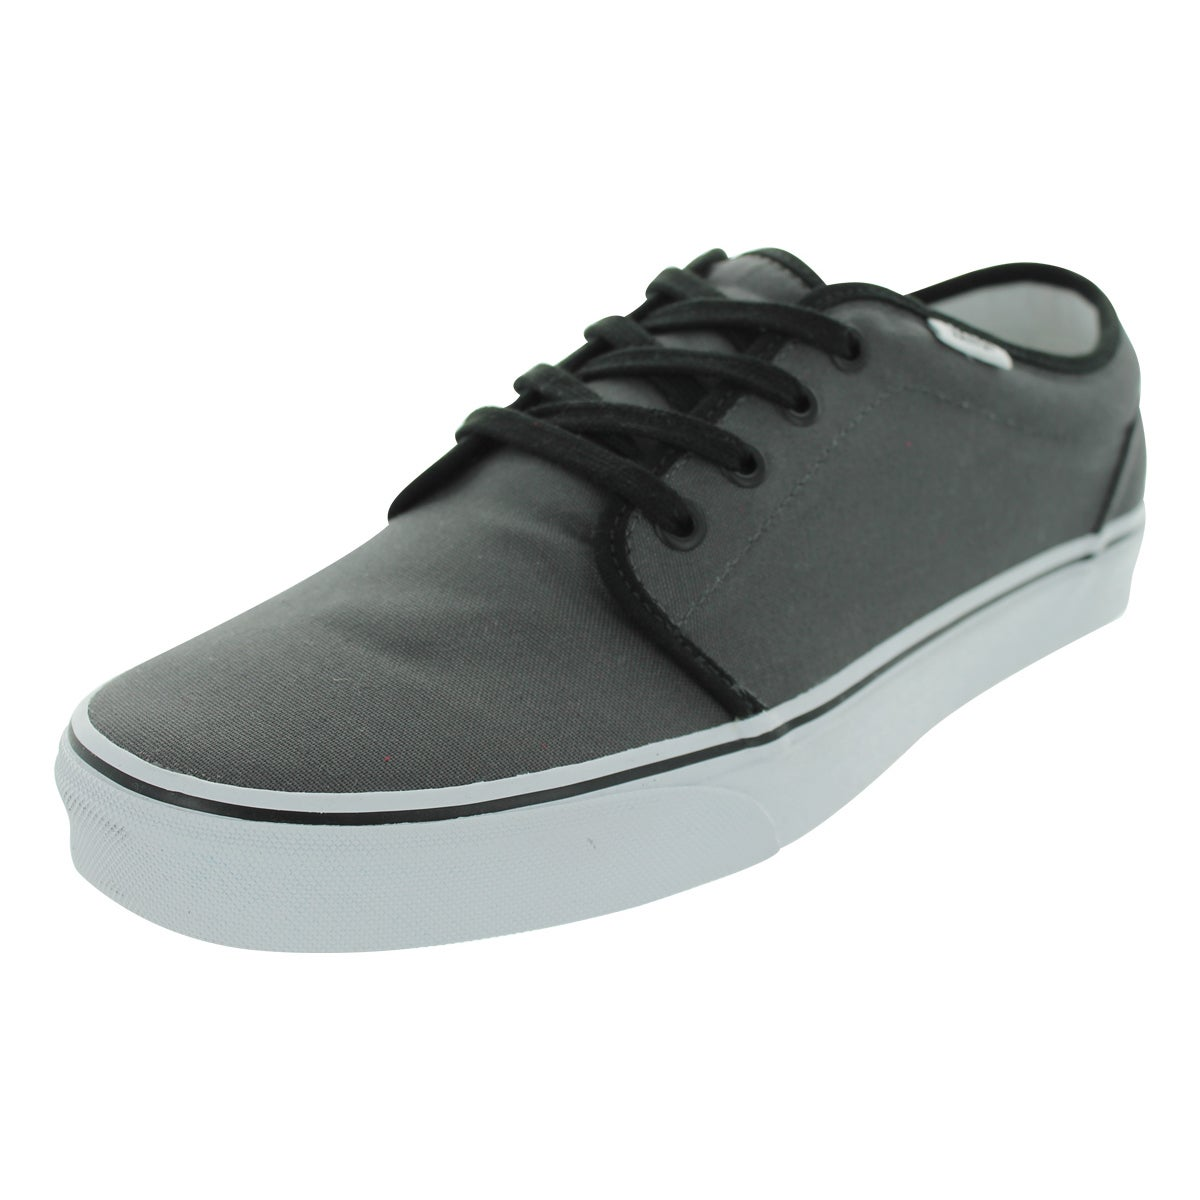 1ab72dd42a Shop Vans 106 Vulcanized Skate Shoes (Pewter Black) - Free Shipping ...